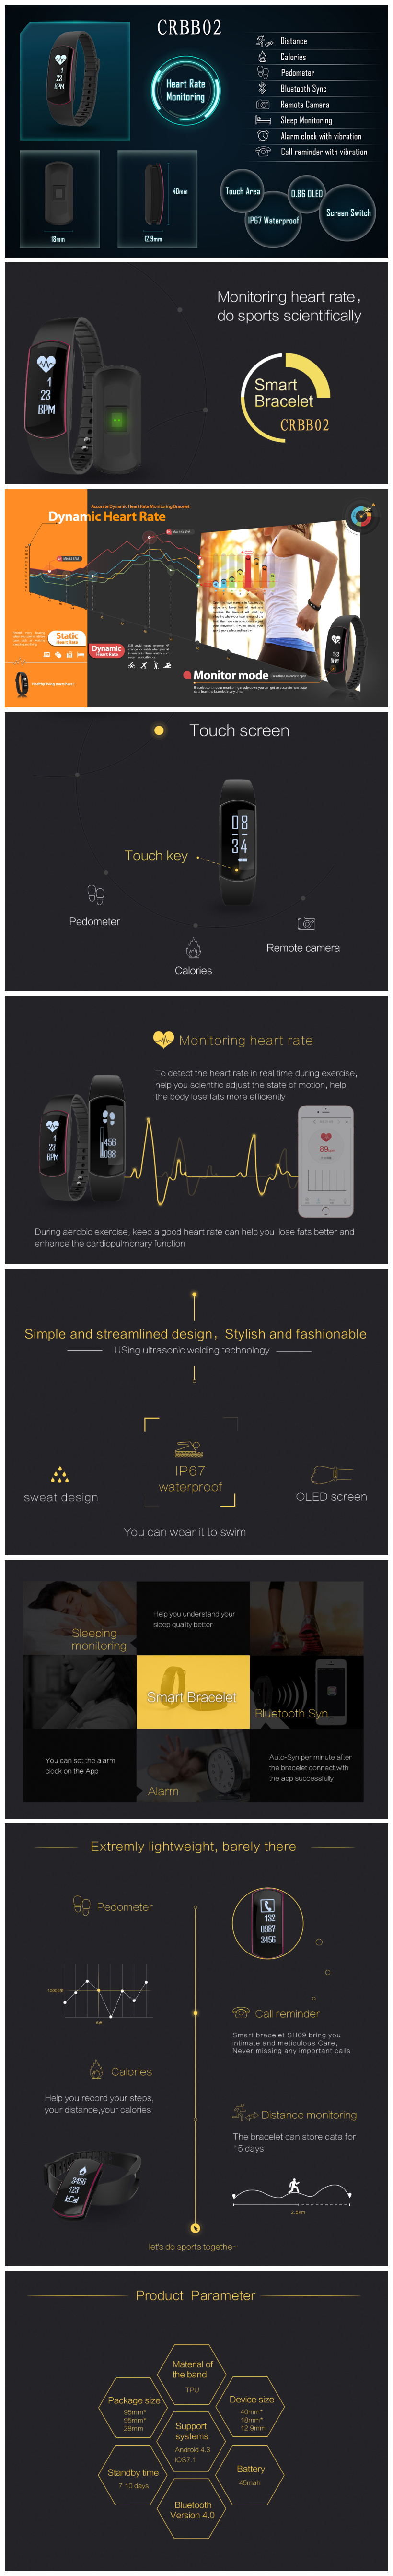 Dynamic heart rate smart sports band activity tracker